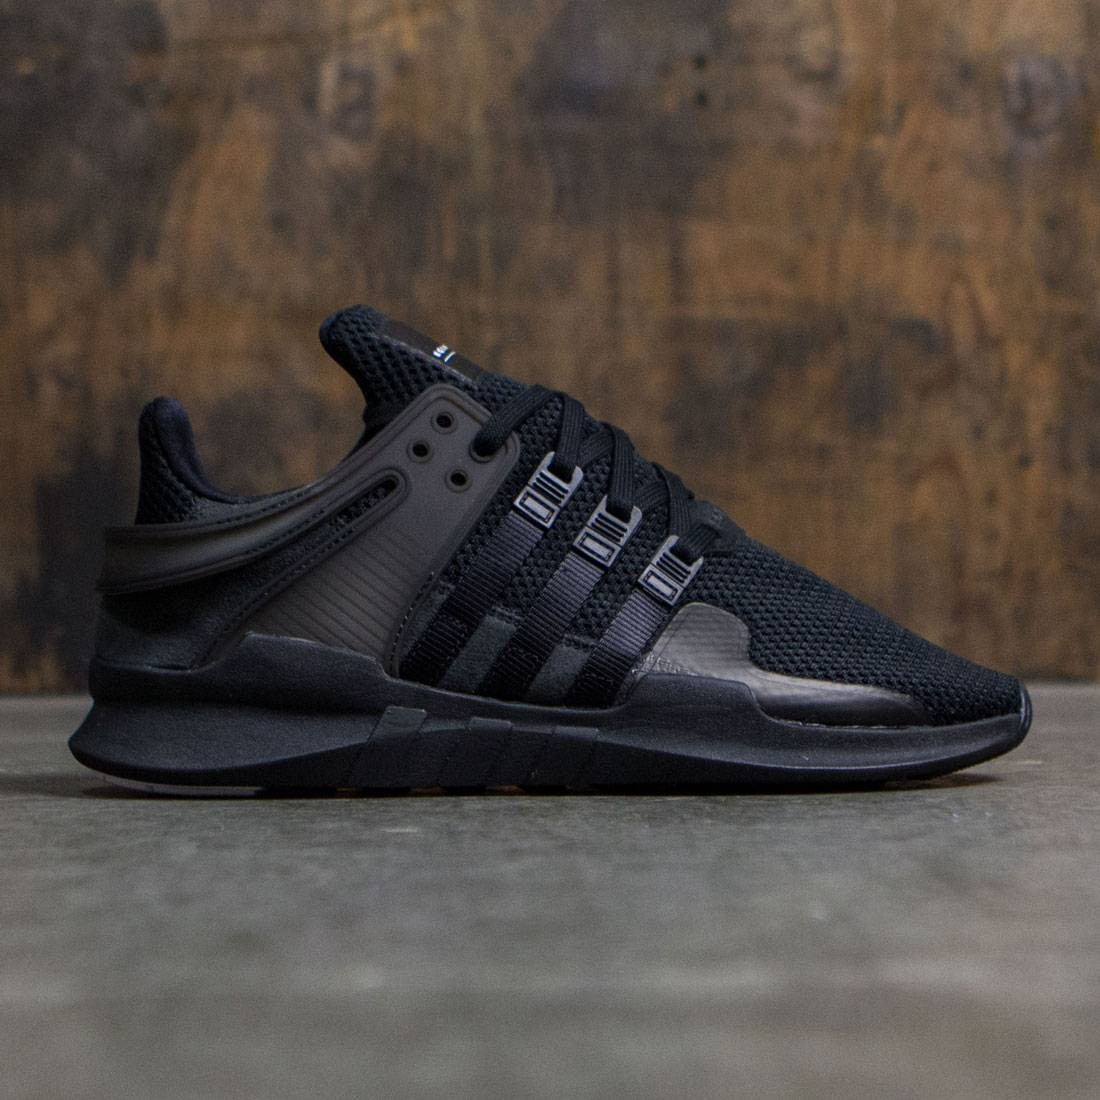 Adidas Core Equipment Support Black Men White Adv Footwear nOX0Nw8Pk